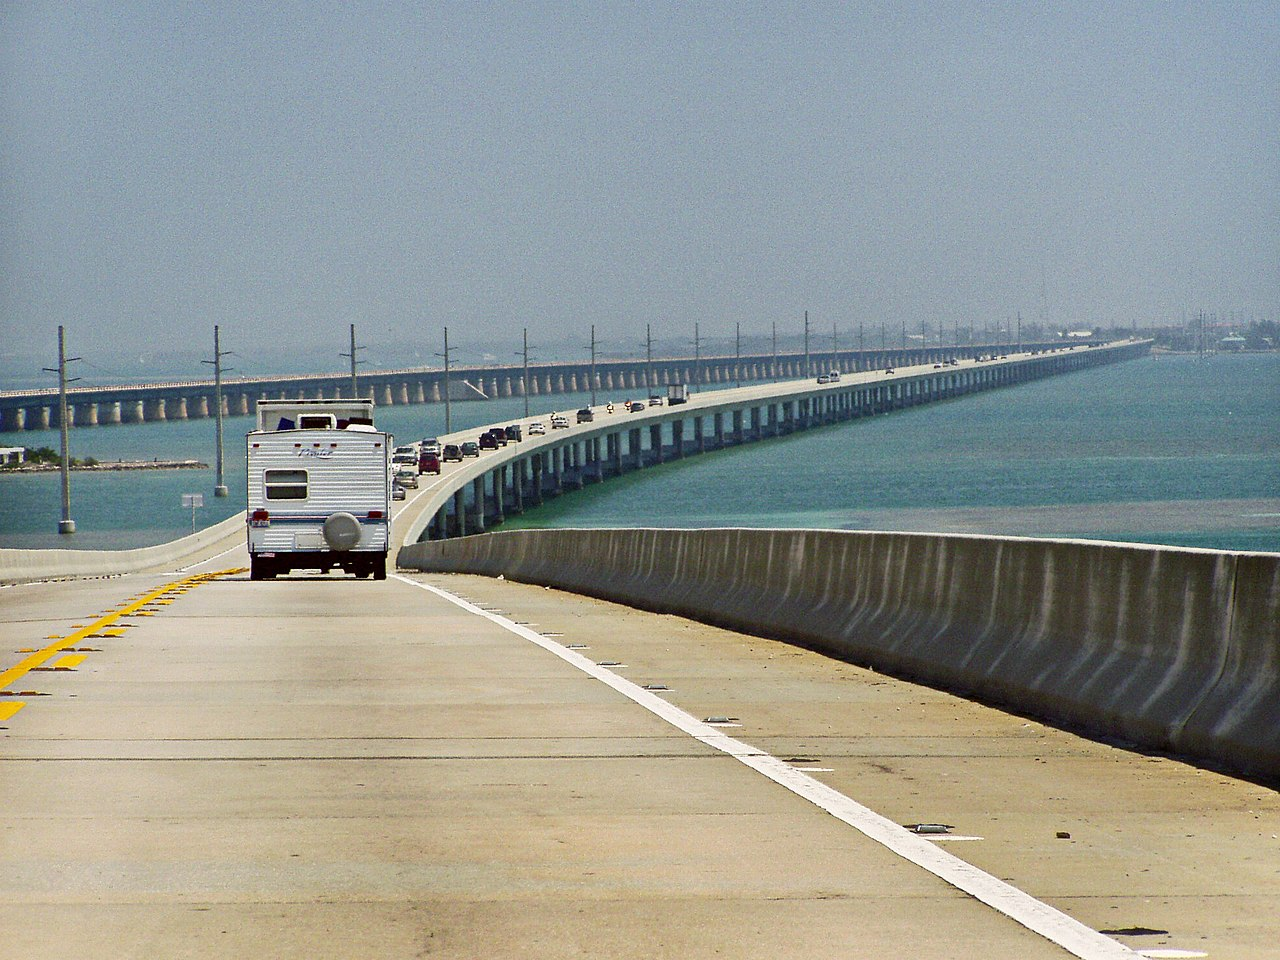 Seven Mile Bridge - Top-Rated Sight-Seeing Destination in the Florida Keys